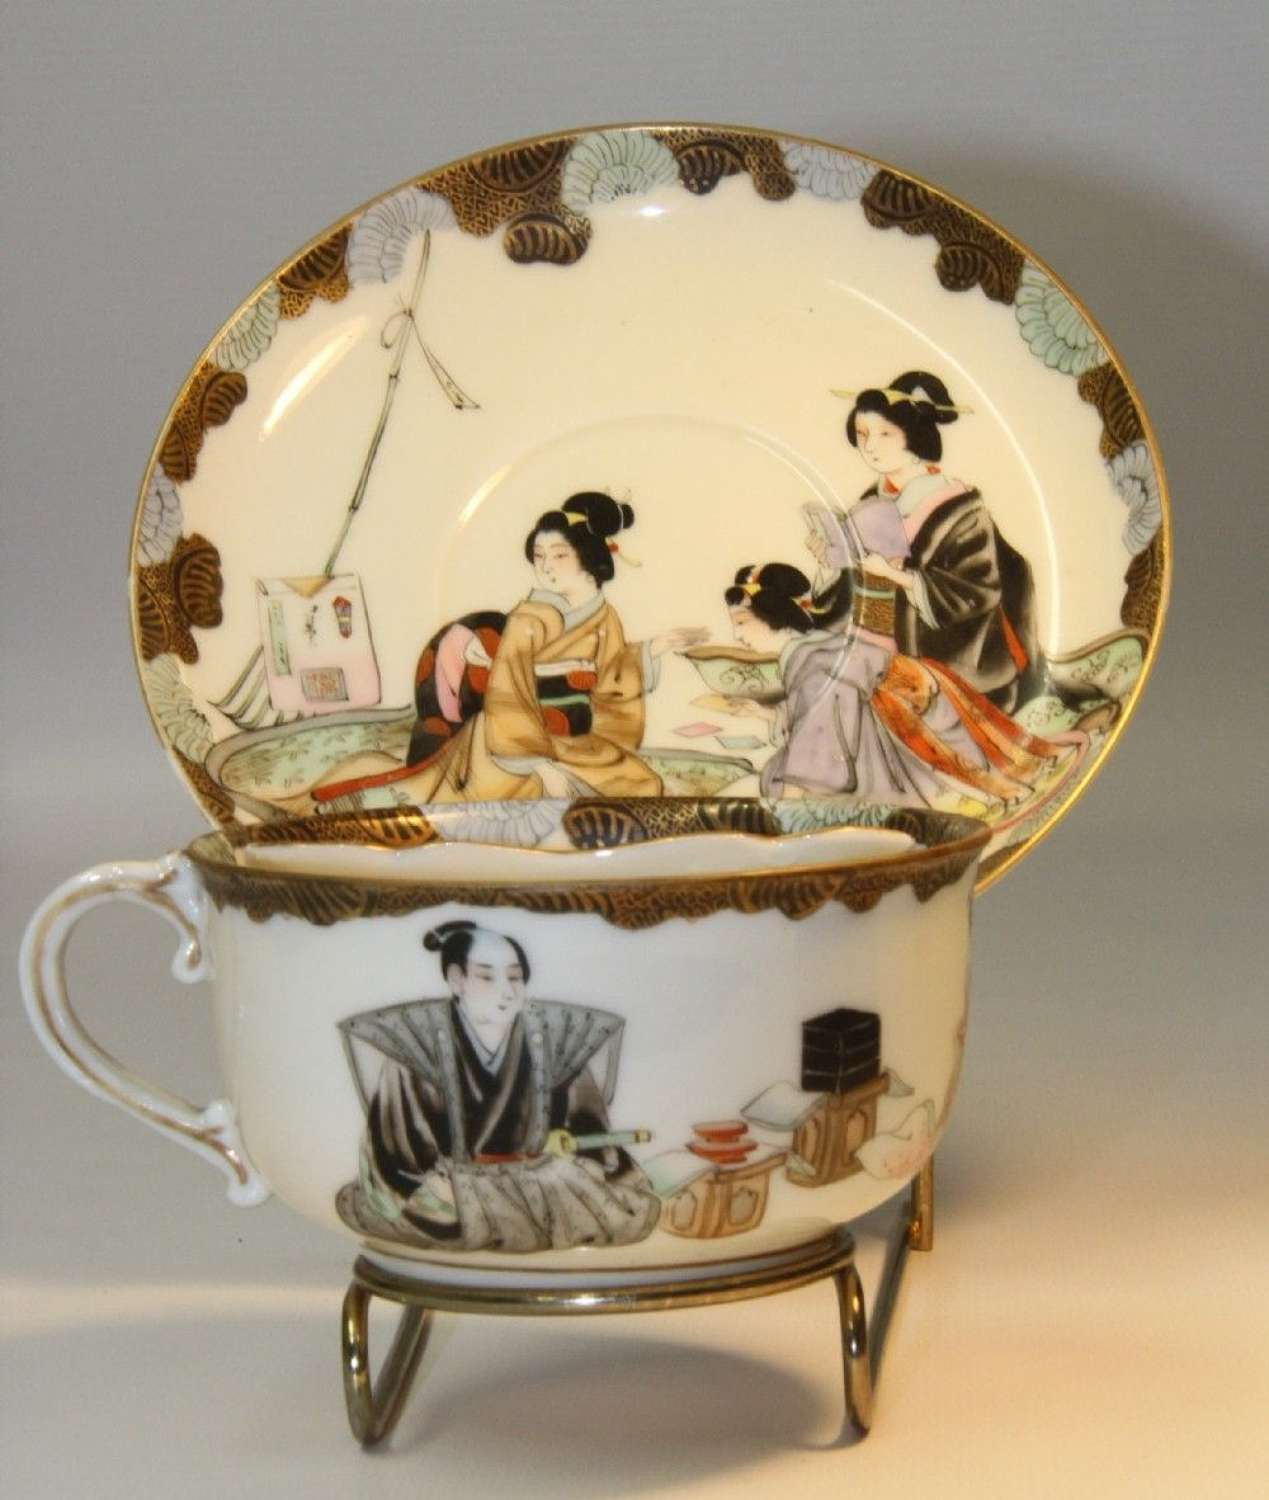 A Rare Japanese Moustache Cup And Saucer